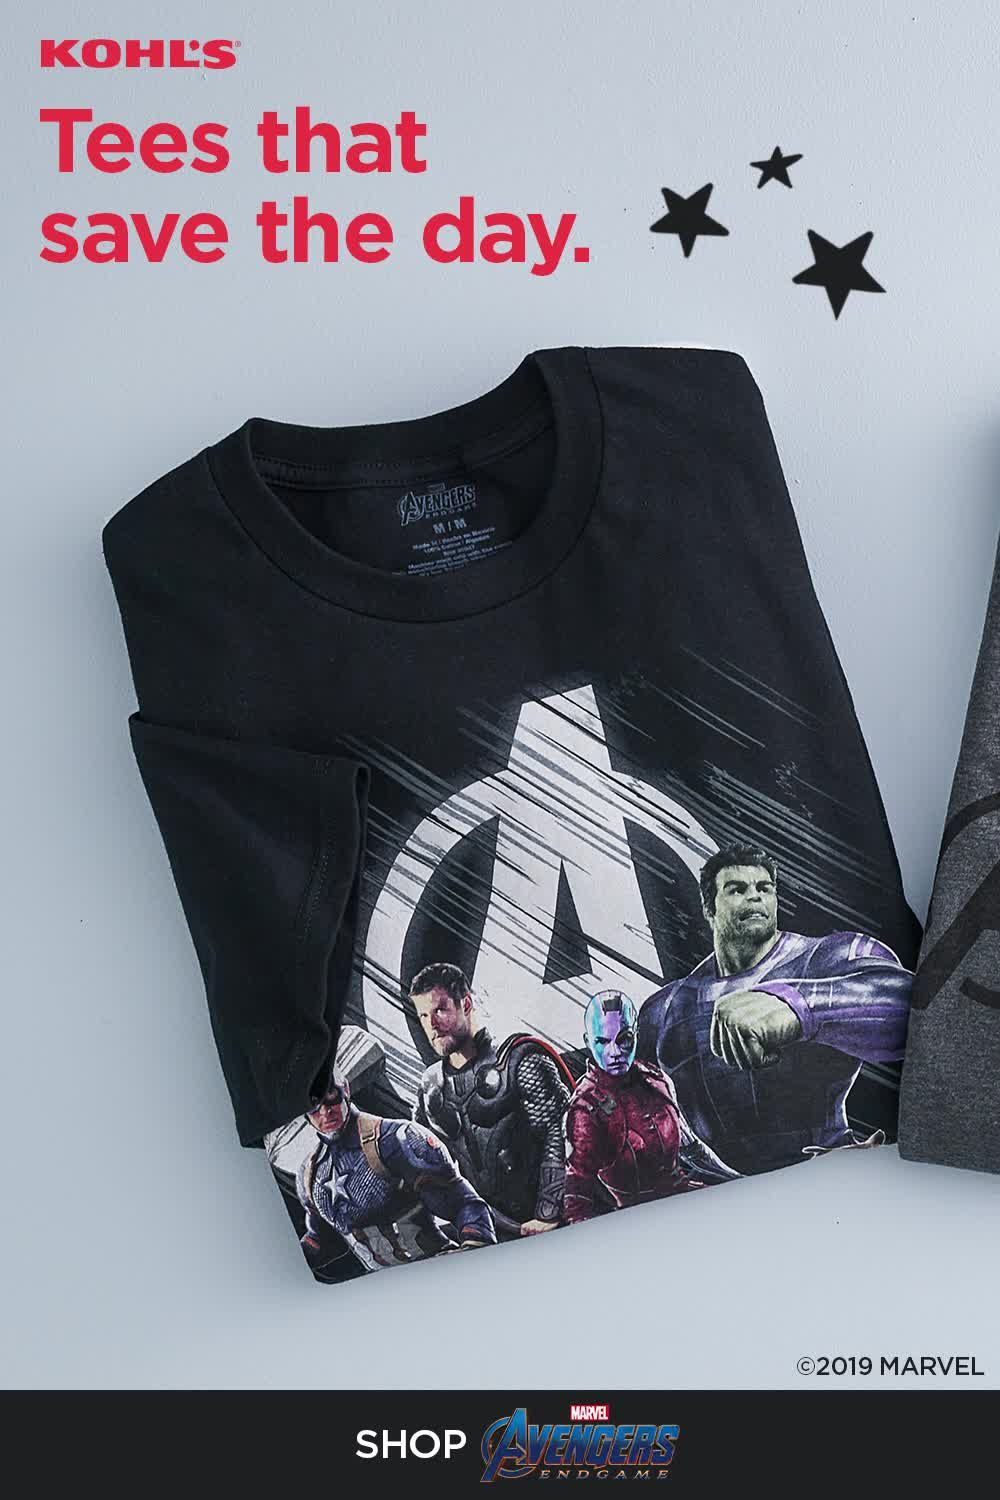 439be3f055d0 Find Marvel Studios' Avengers: Endgame tees at Kohl's. Suit up as your  favorite